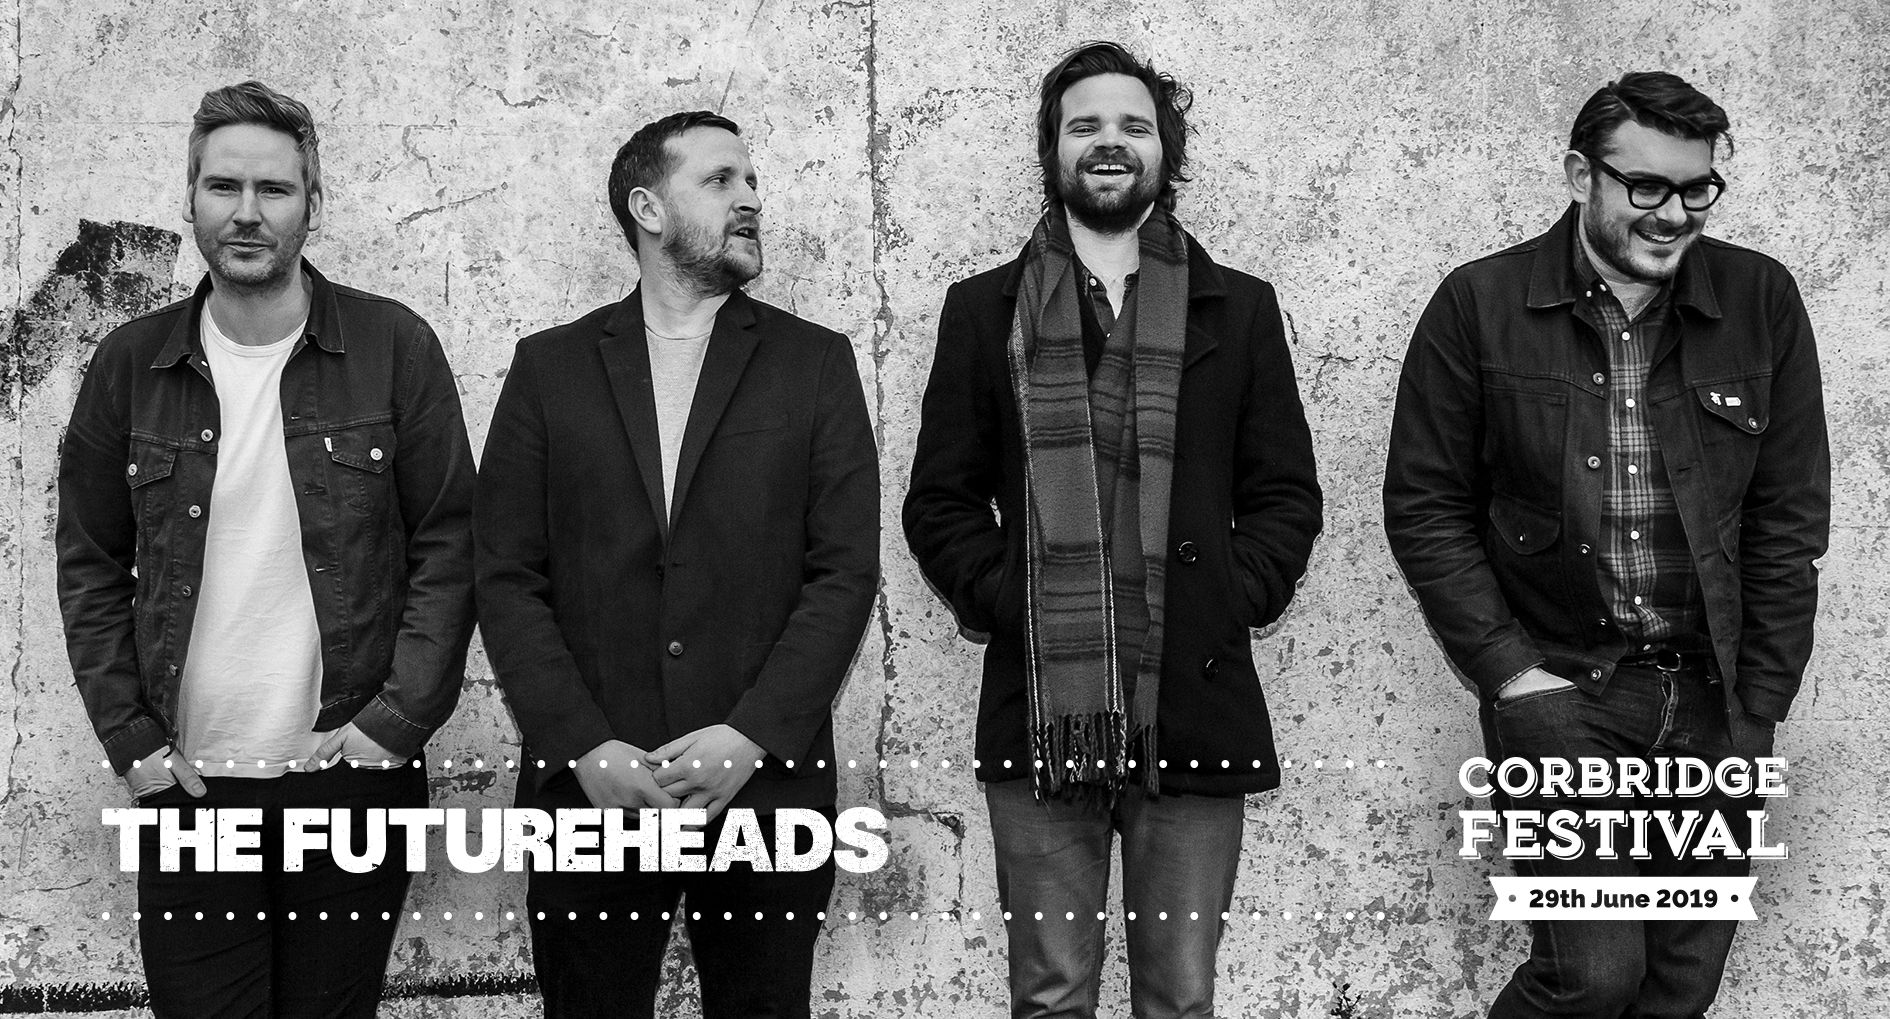 The Futureheads play Corbridge Festival 2019 on Saturday 29th June